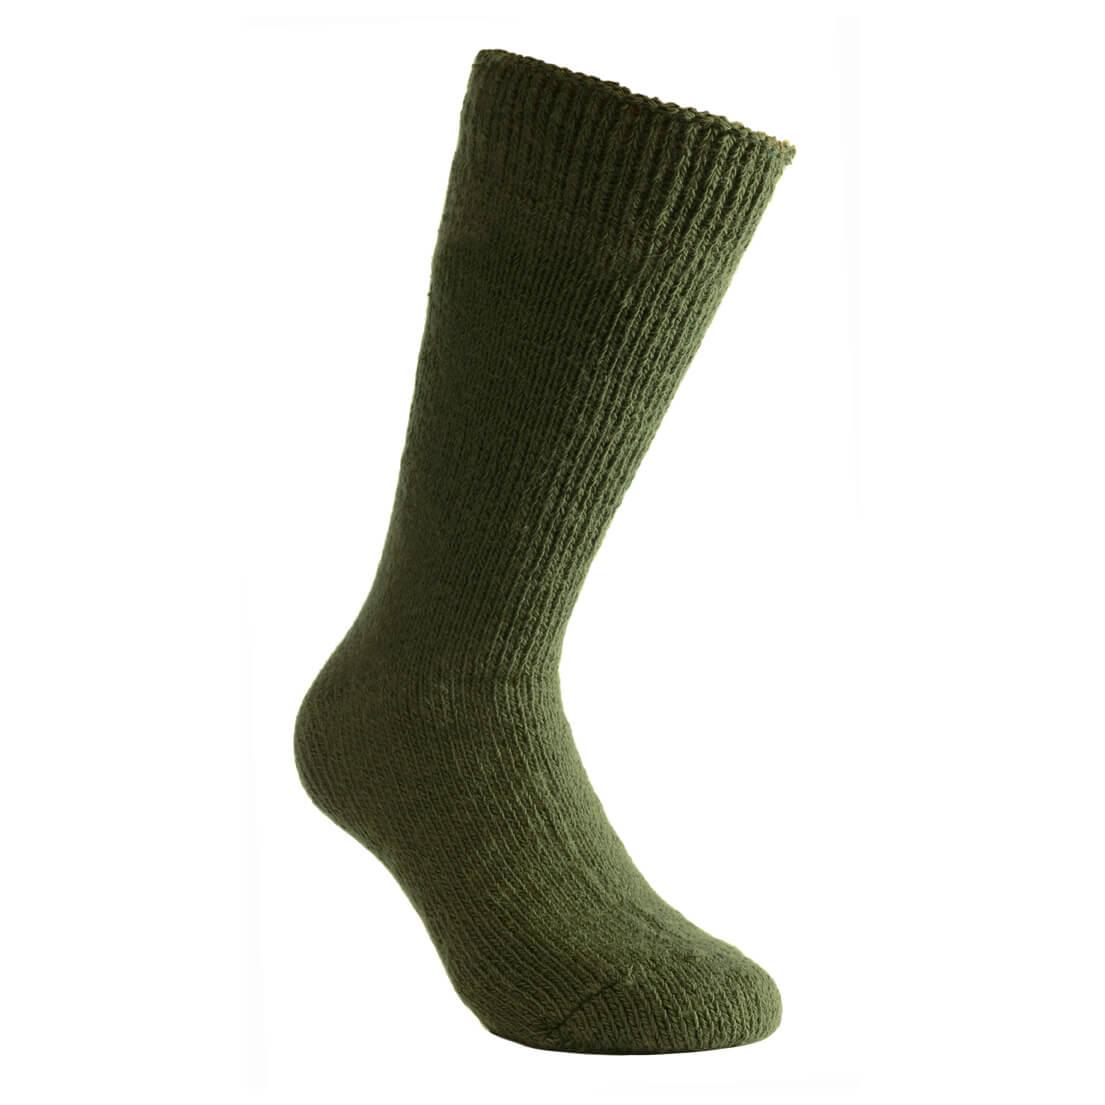 Woolpower - Socks 800 - Expeditionssocken Green